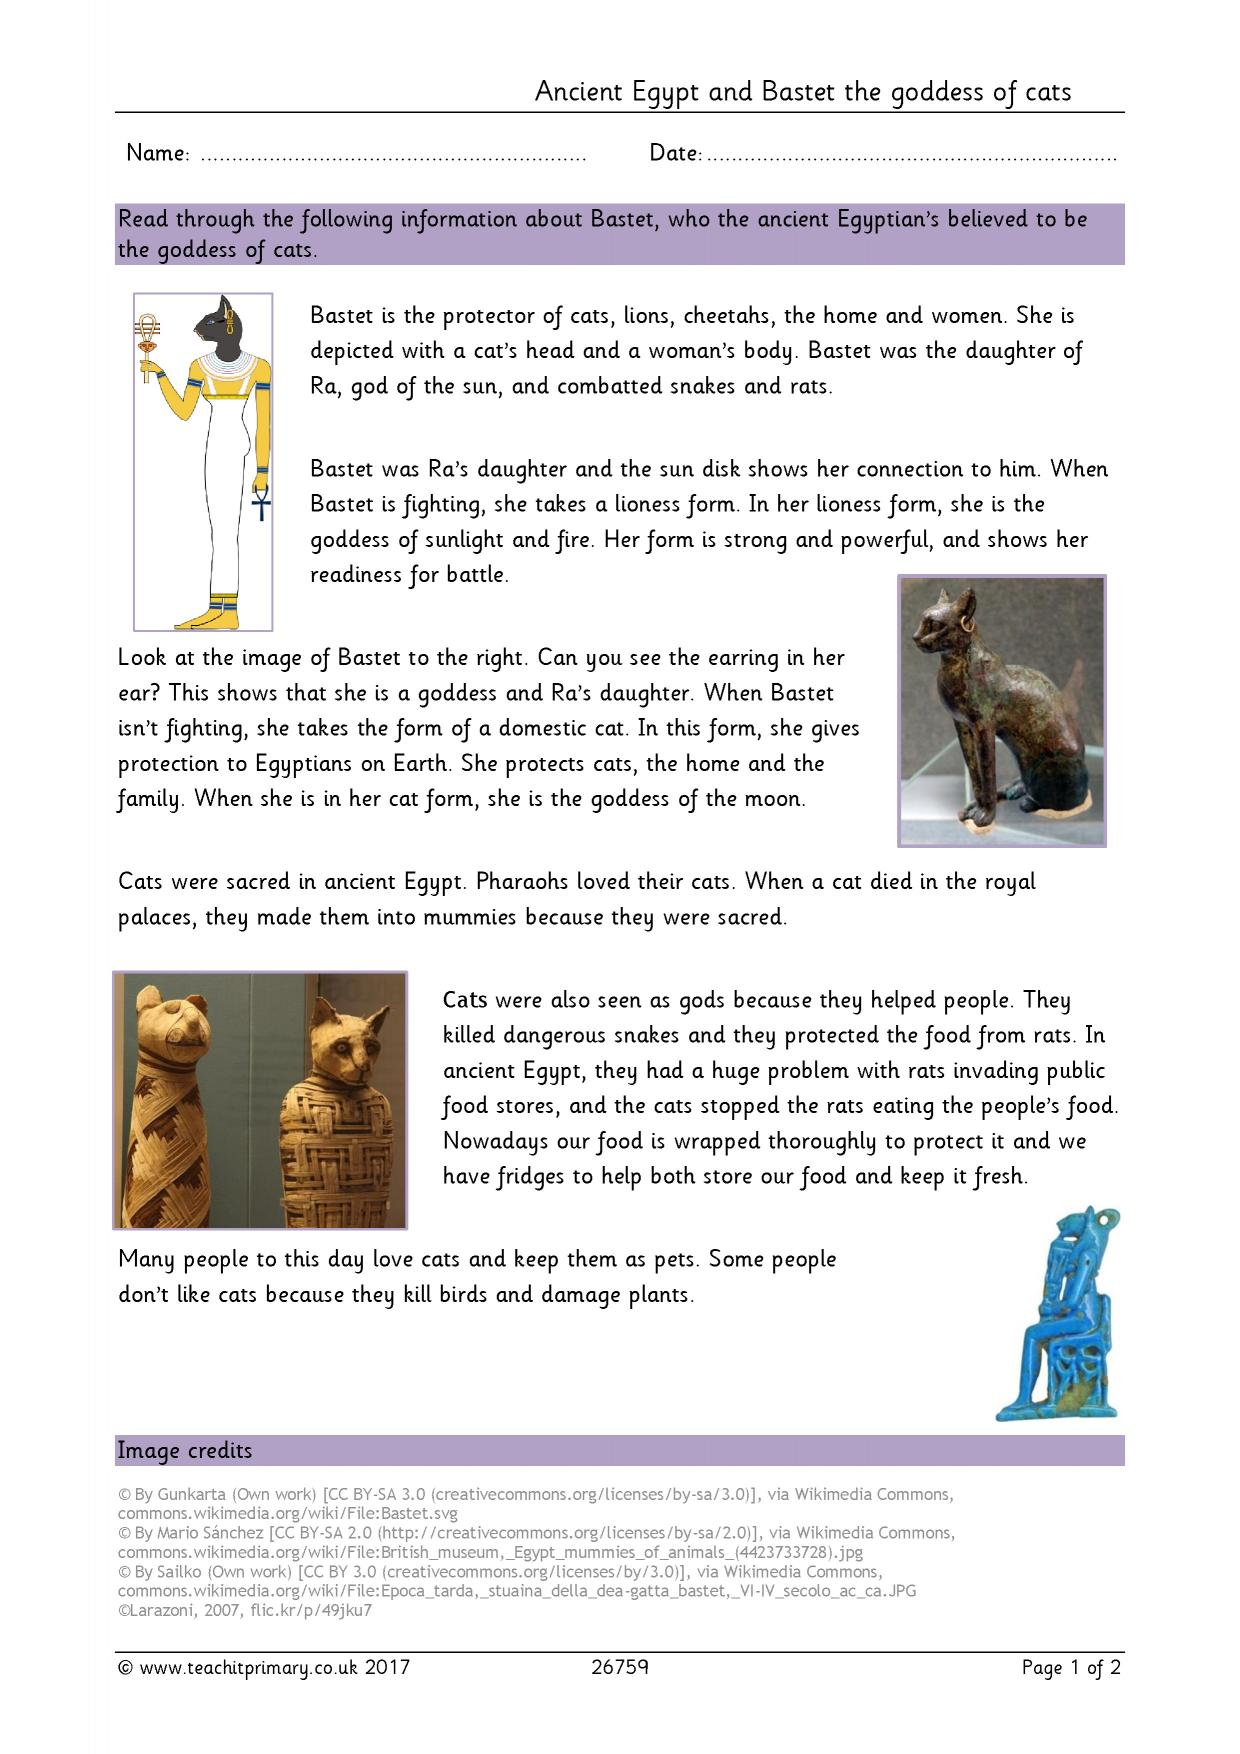 Ancient Egyptians and Bastet the goddess of cats